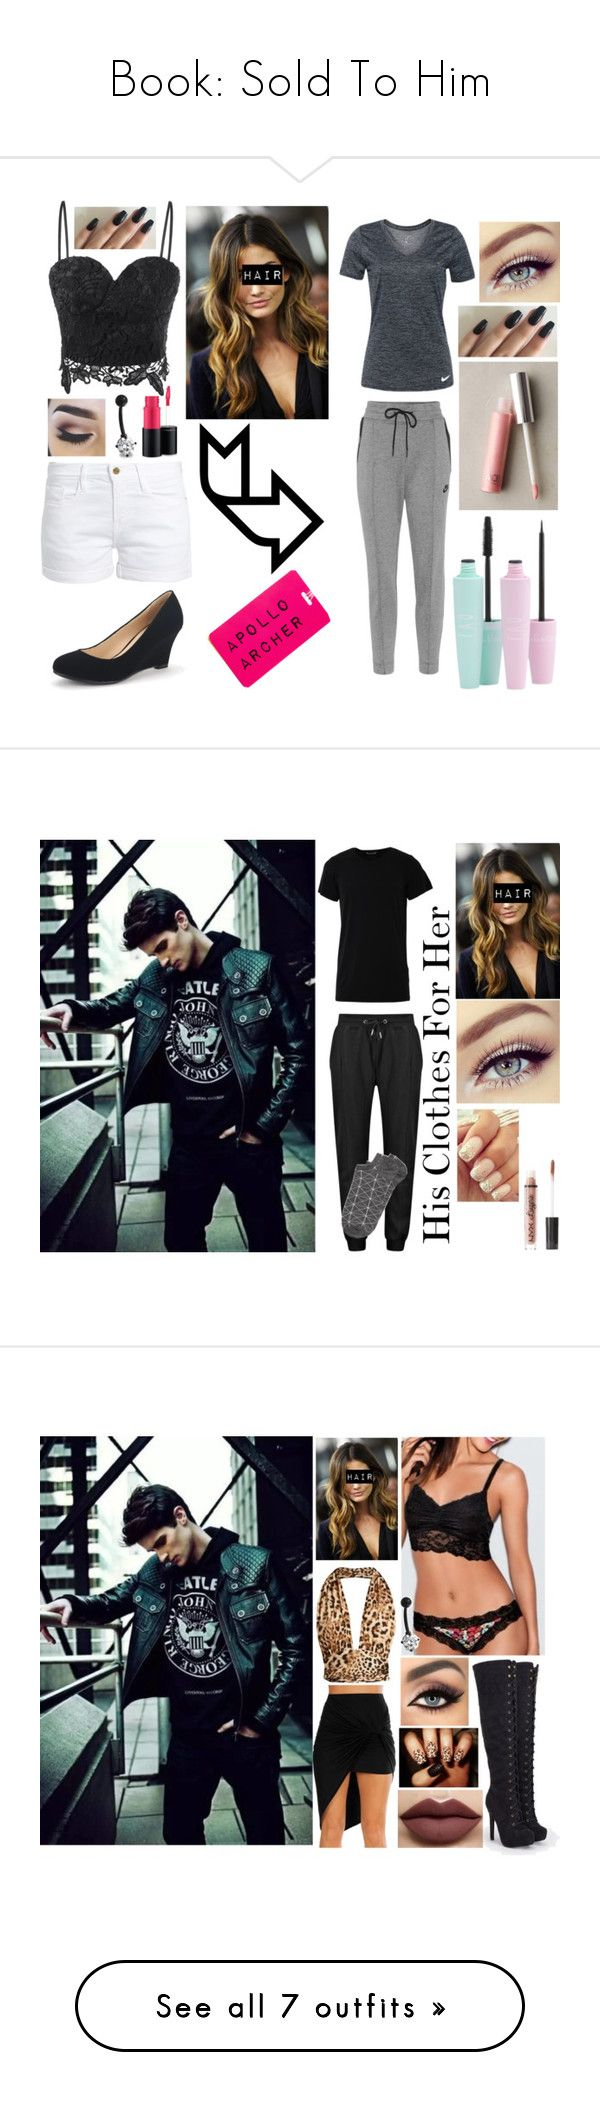 """""""Book: Sold To Him"""" by kaylanoelbryan on Polyvore featuring Frame, MAC Cosmetics, Bling Jewelry, NIKE, FACE Stockholm, Numero00, Witchery, Charlotte Russe, Victoria's Secret and JustFab"""